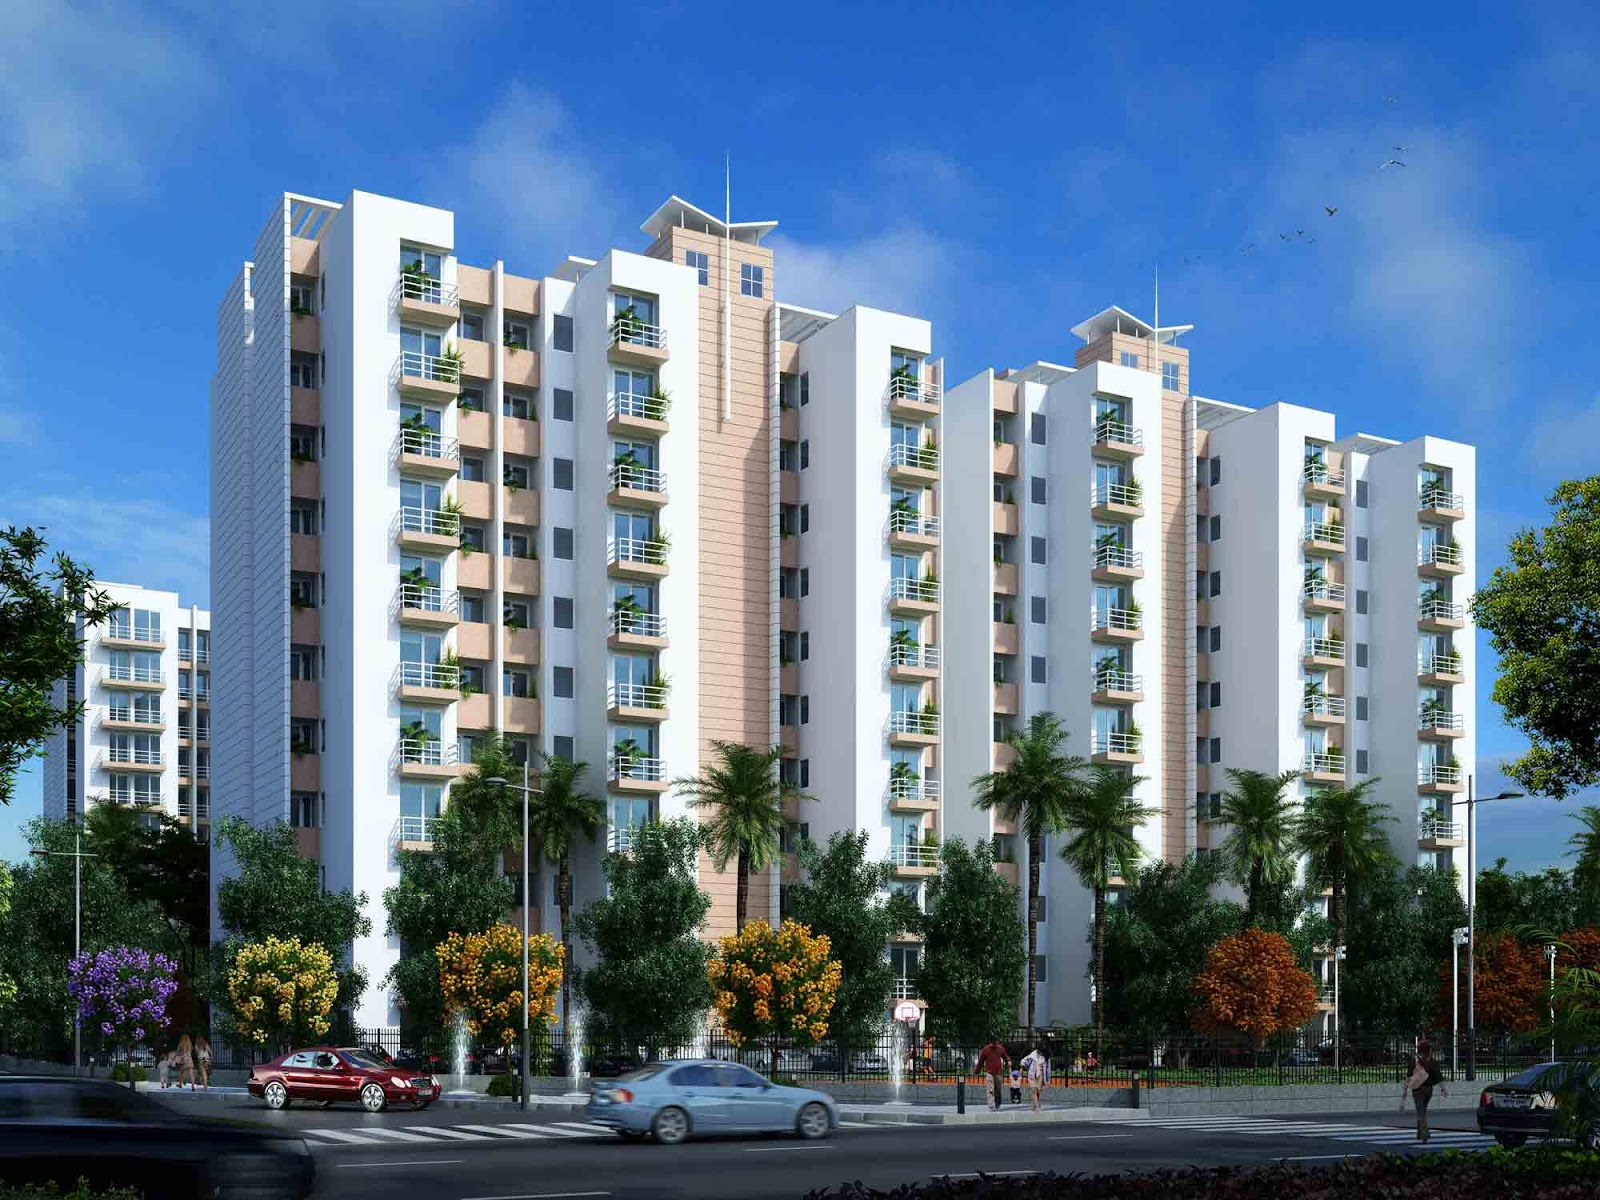 Residential flats apartments houses bung lows and commercial space